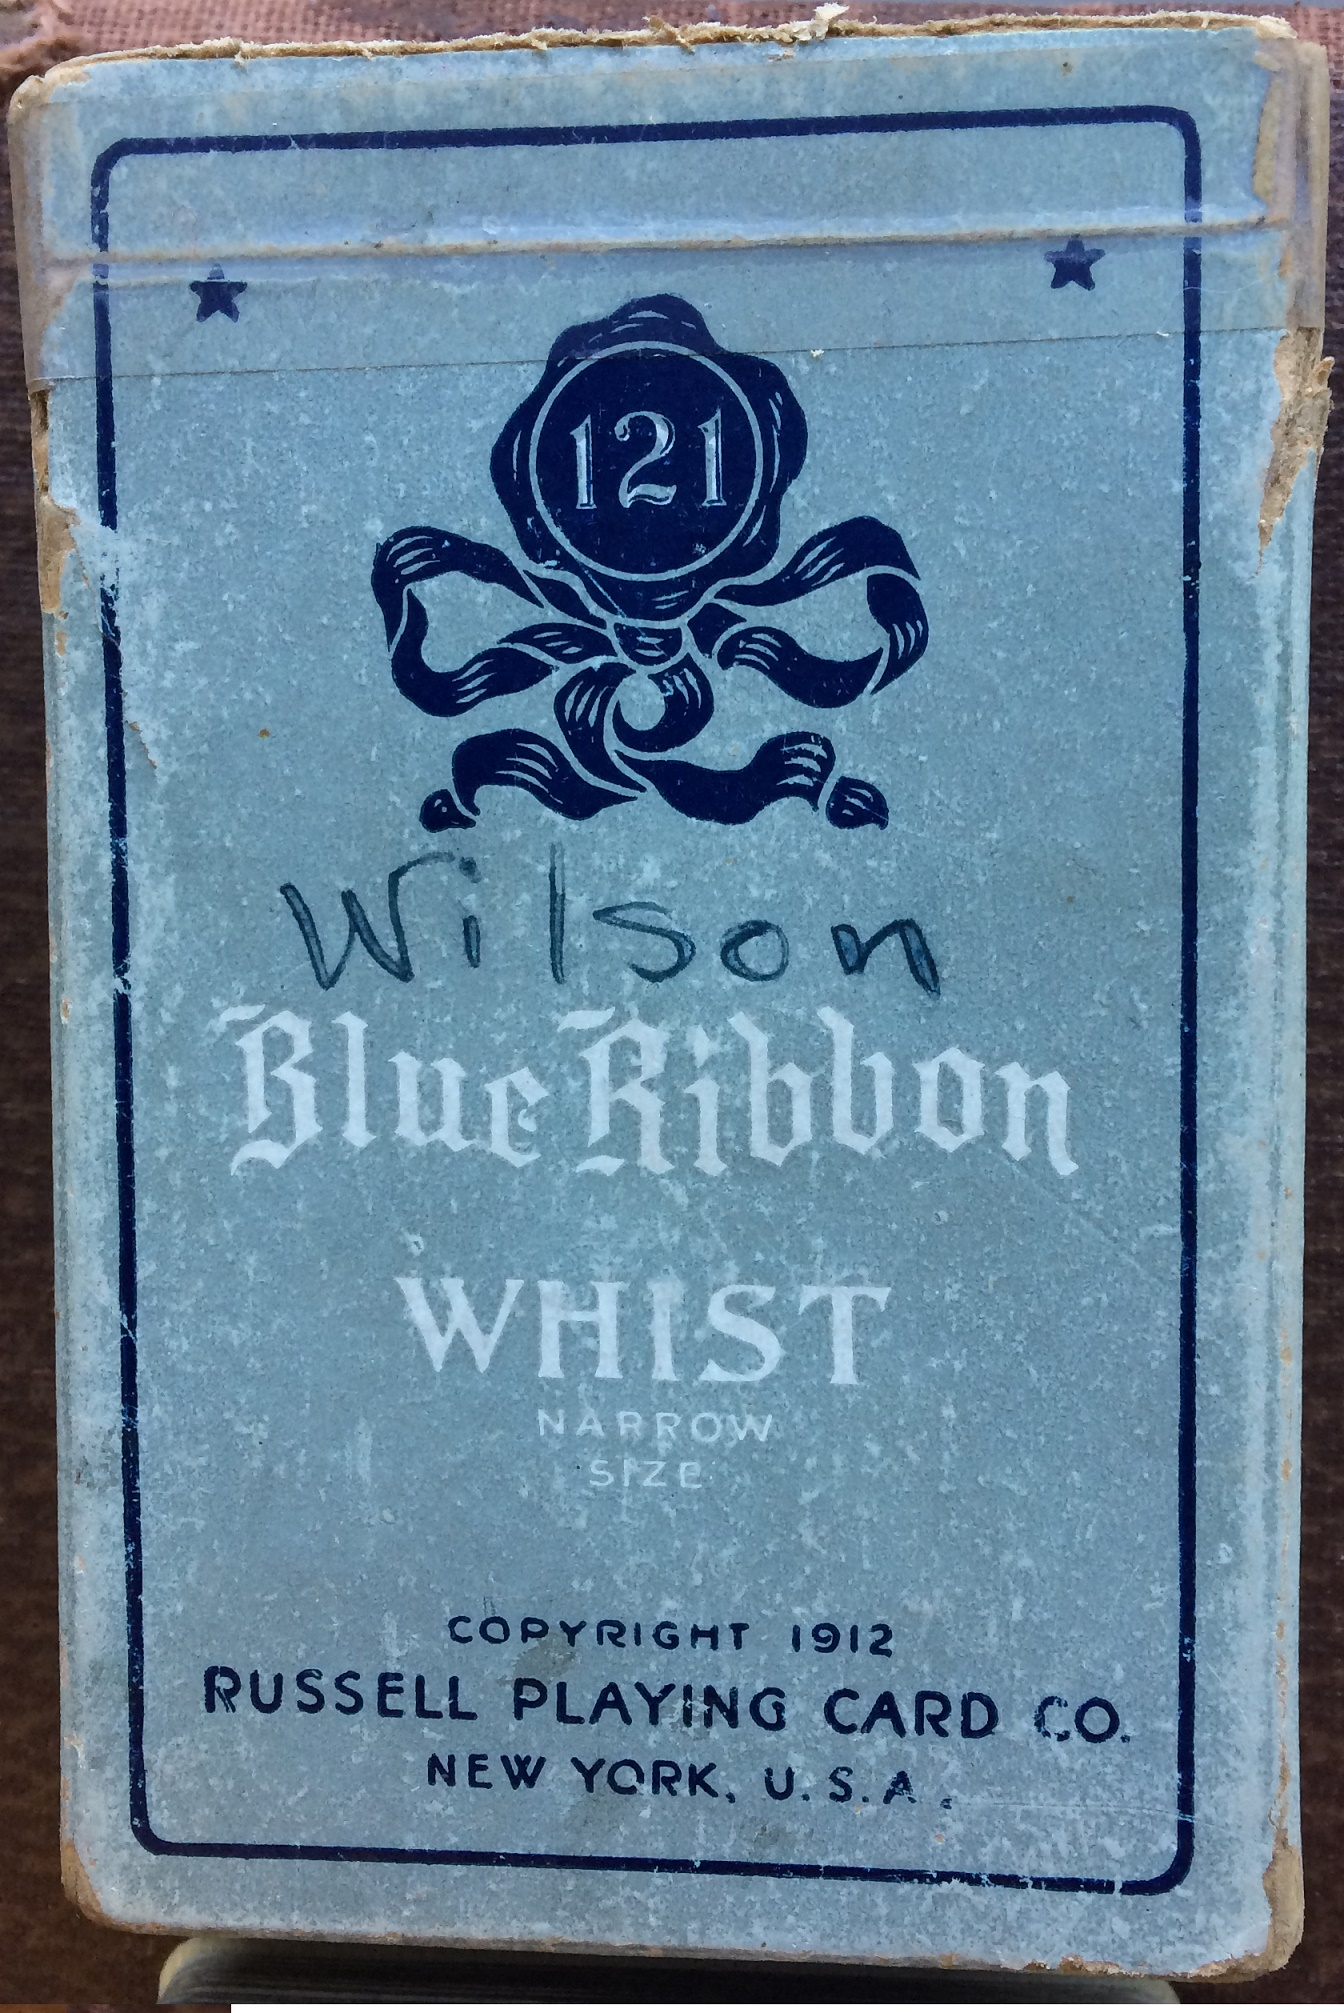 Blue Ribbon Whist - Koh-I-Noor box.jpg